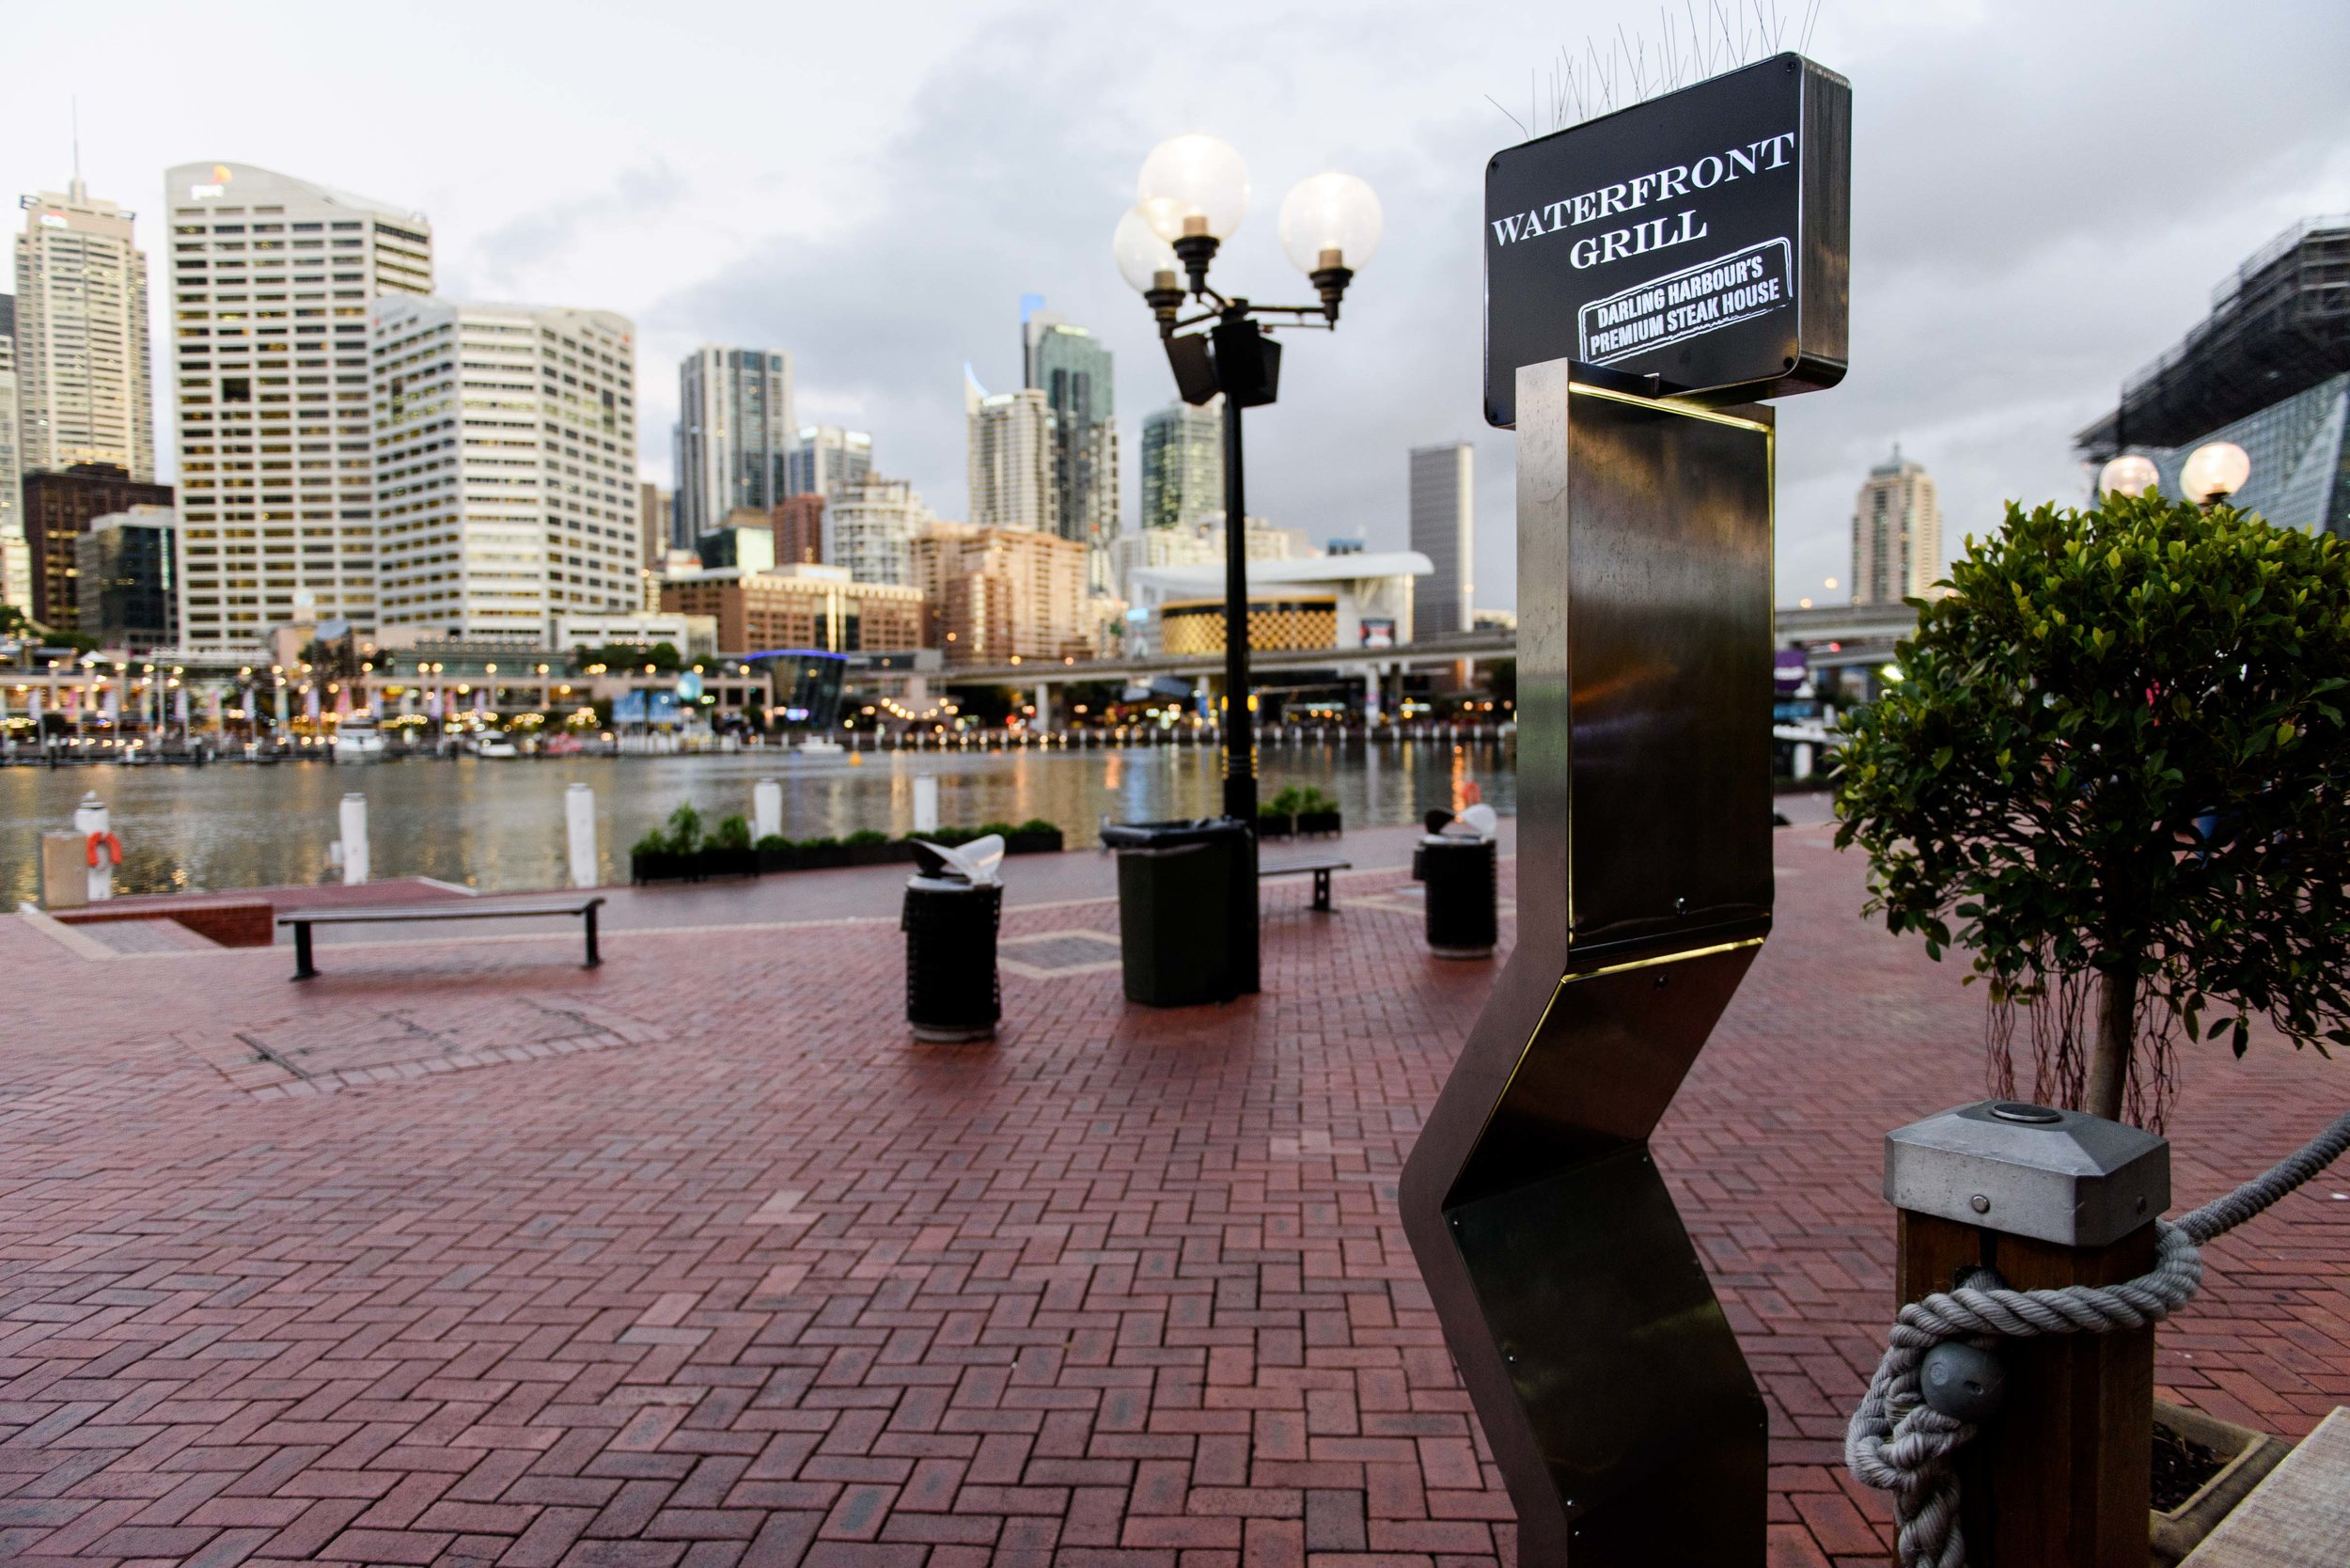 Waterfront-Grill-Gallery-4.jpg